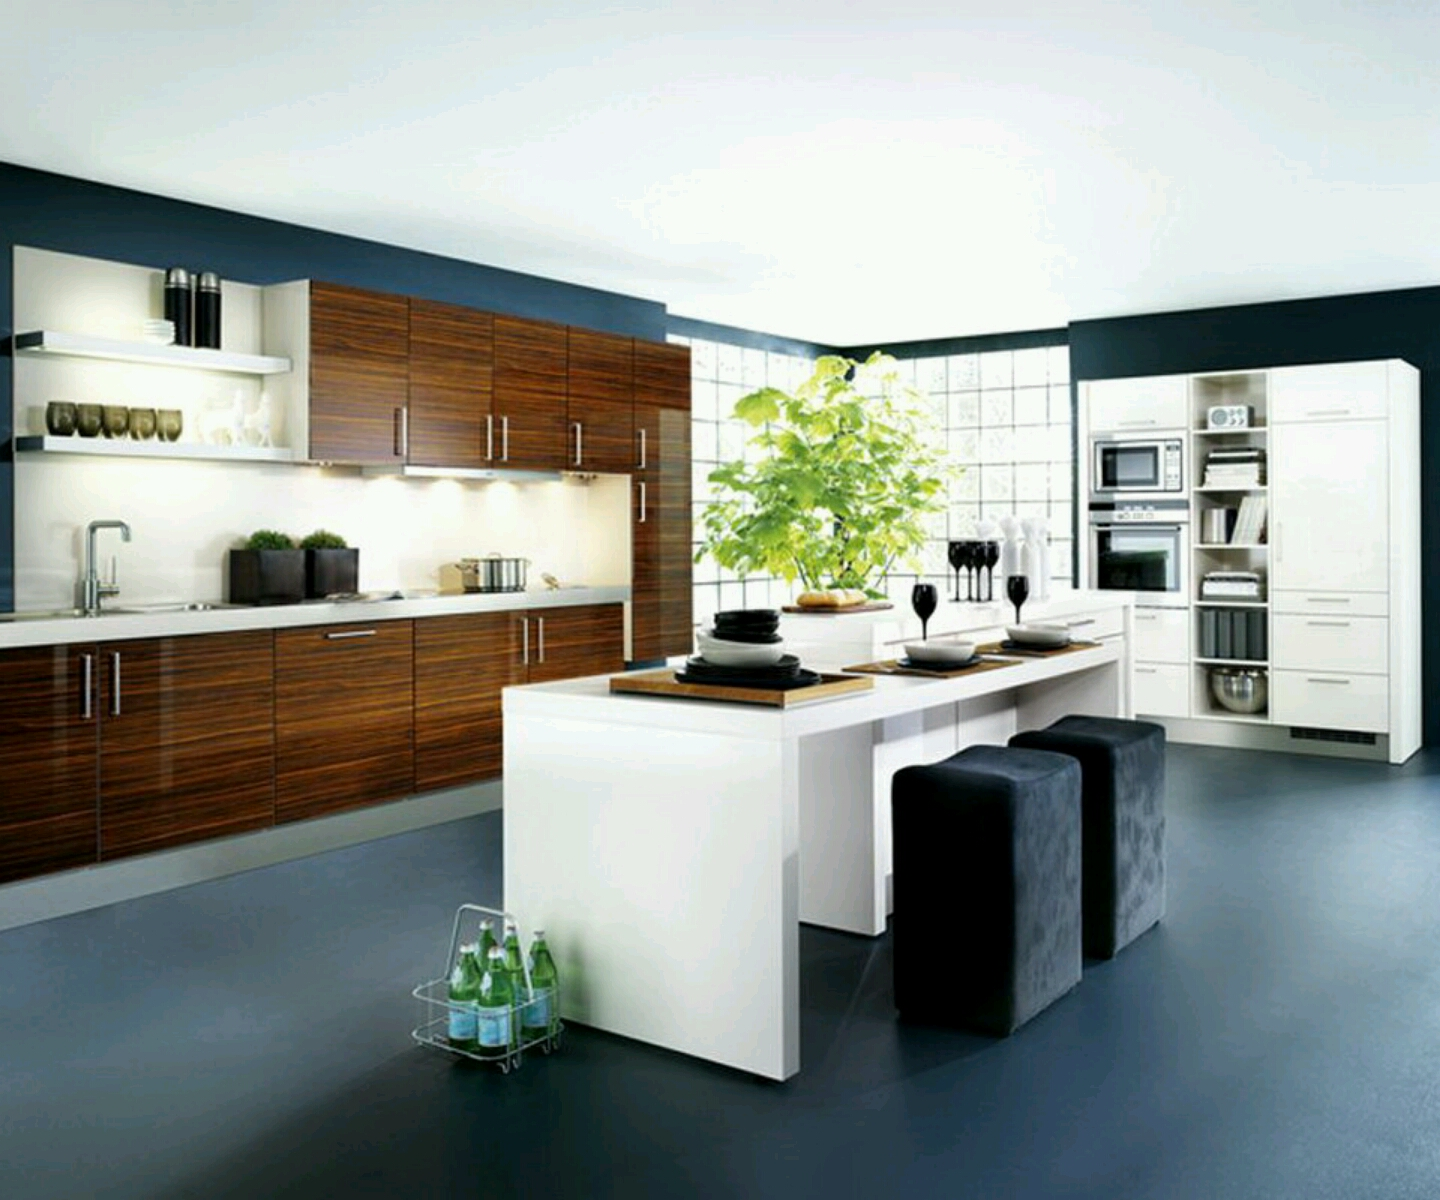 New home designs latest kitchen cabinets designs modern for New kitchen ideas